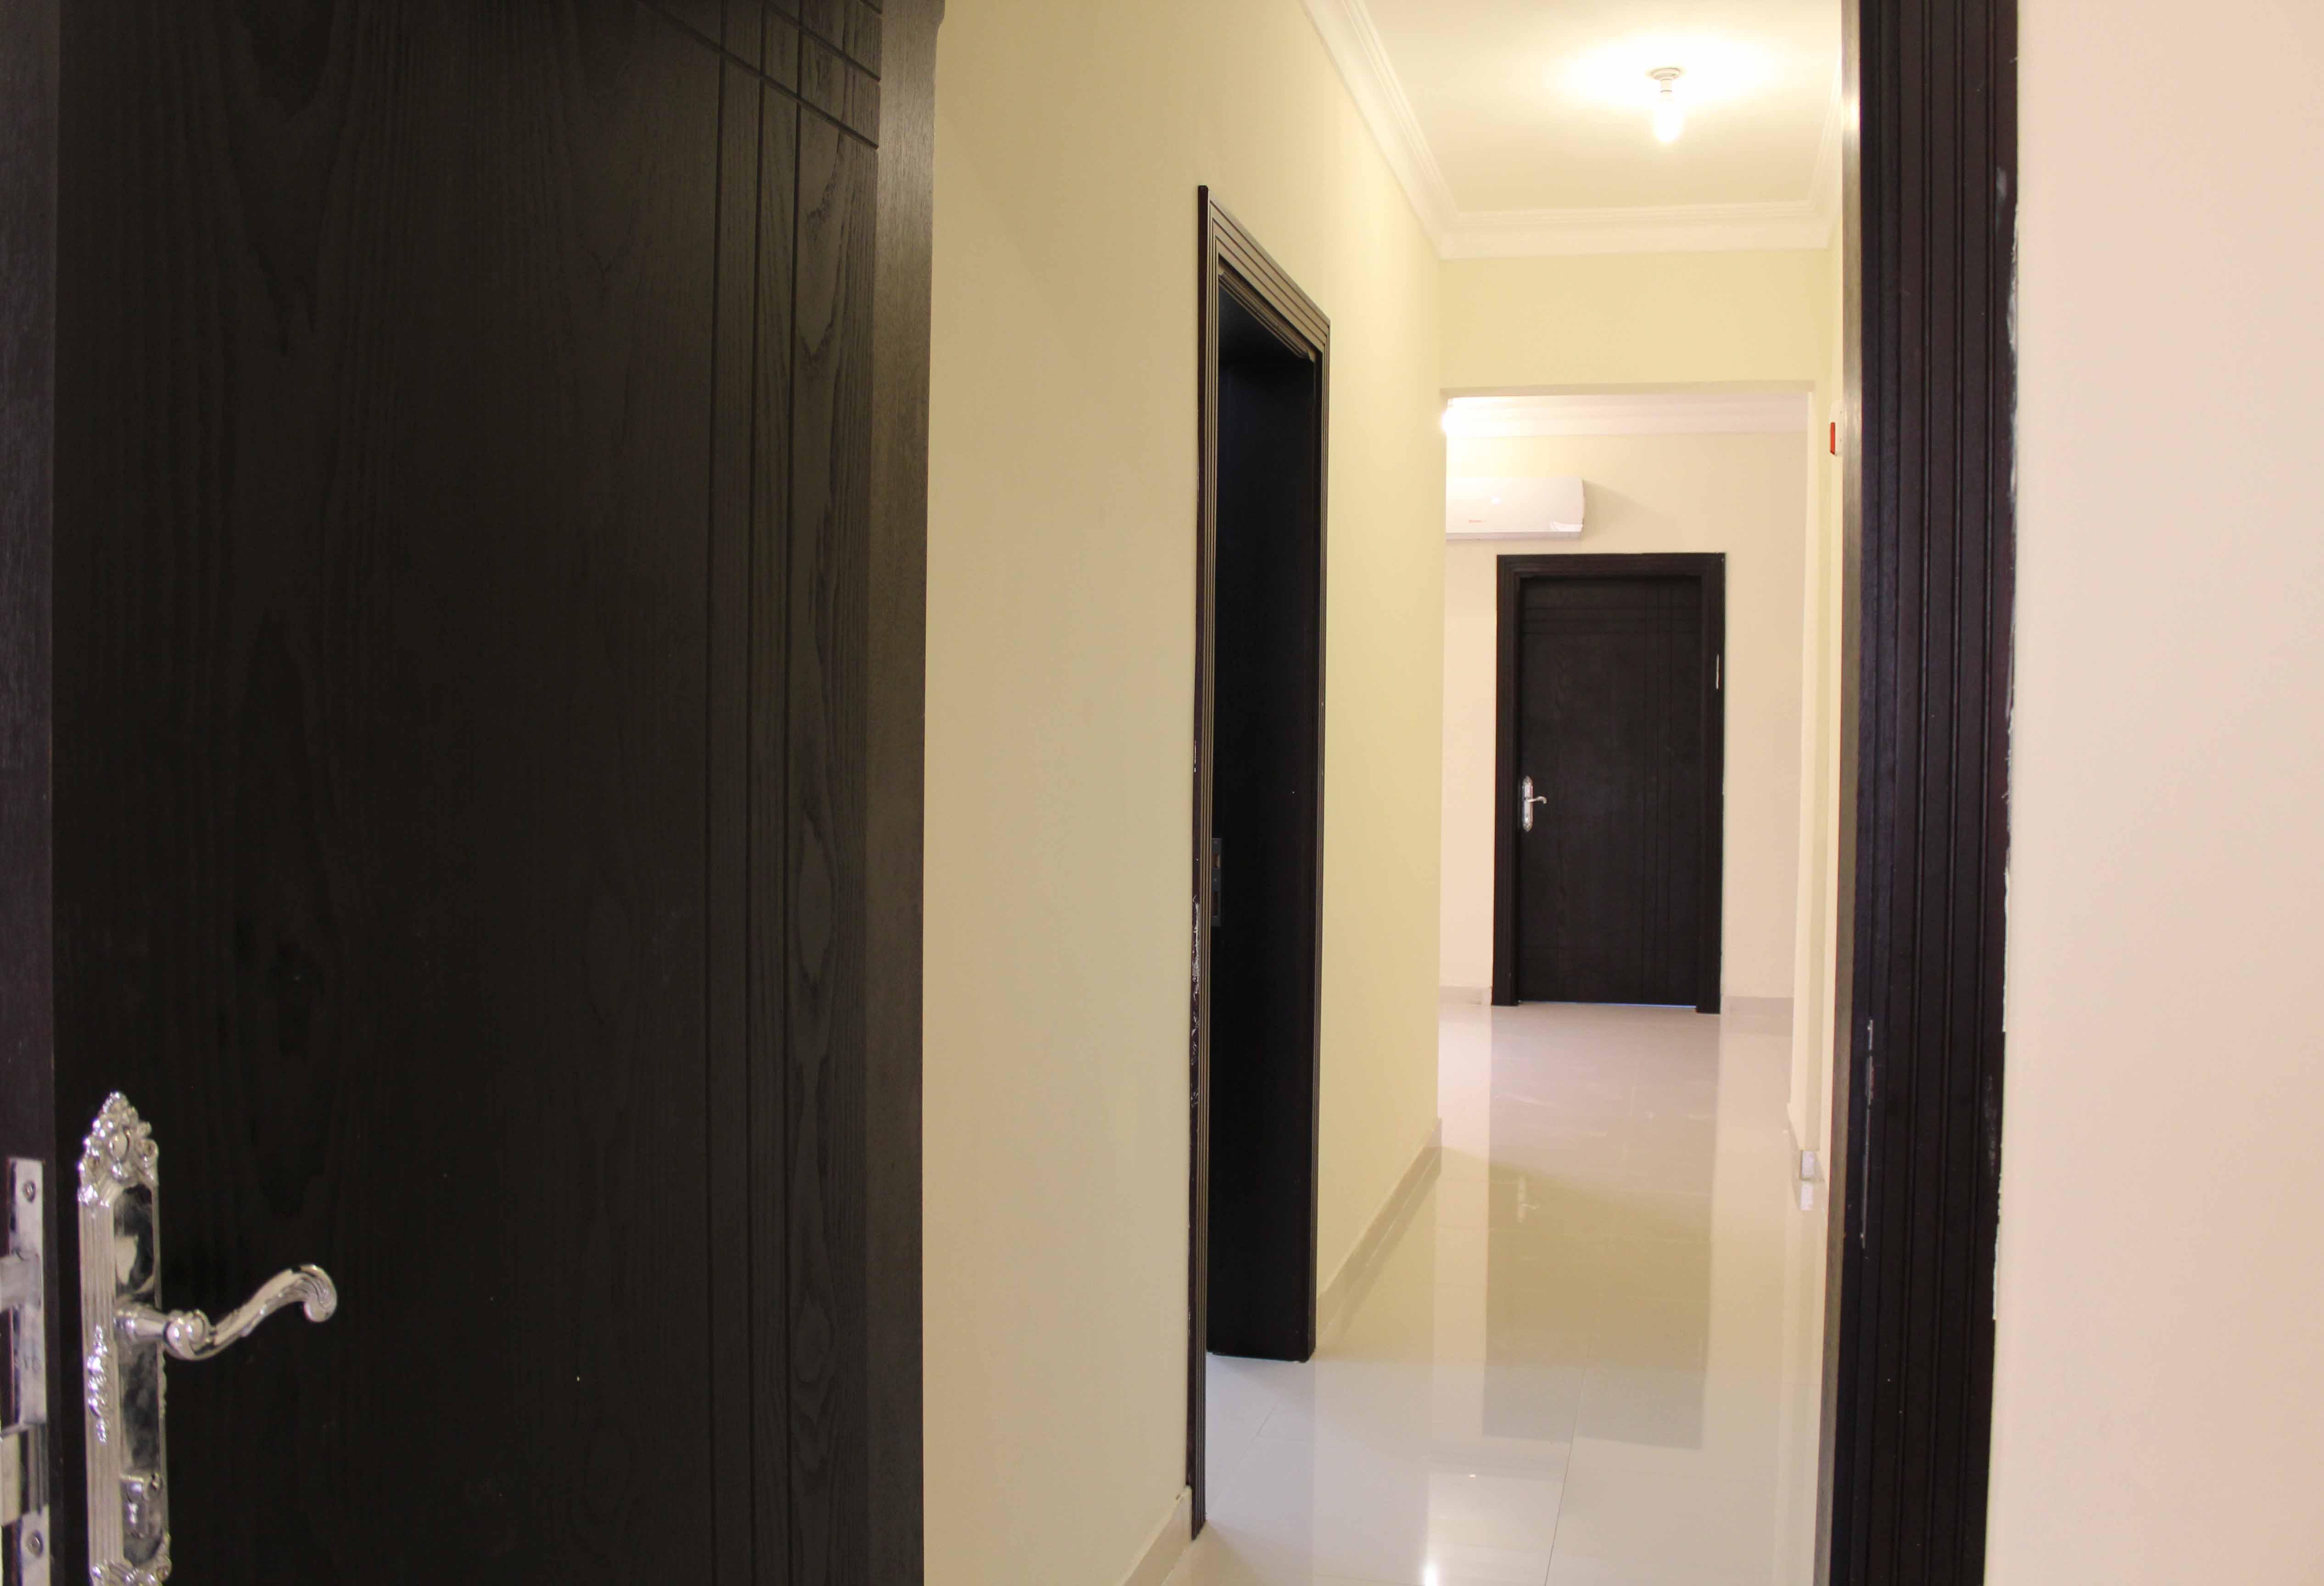 1 room kitchen apartment for rent in bangalore dating